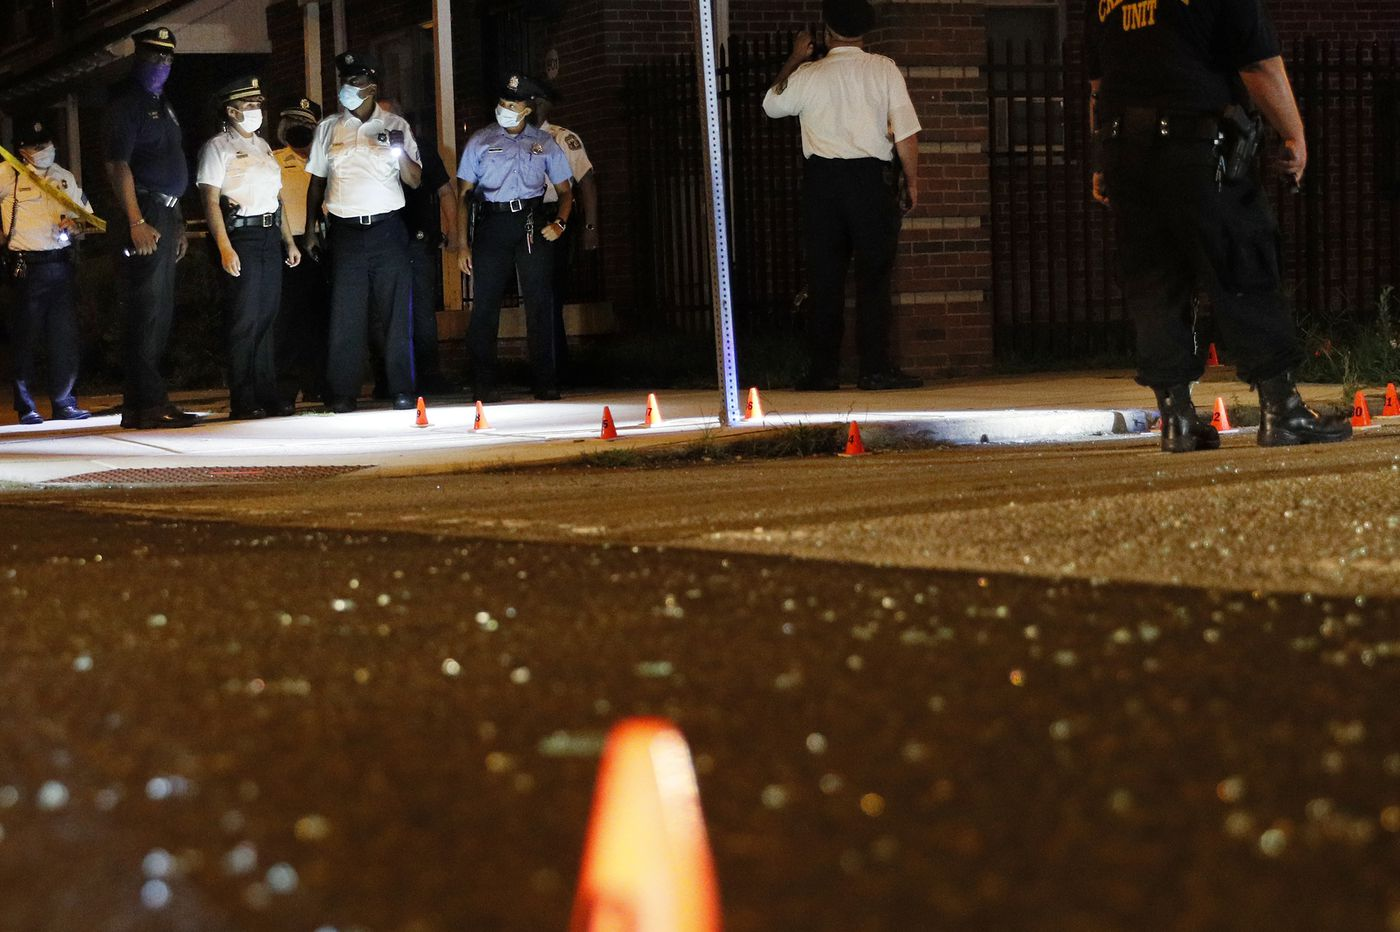 30 people were shot this weekend in Philadelphia, including 5 at a party held to honor a gun violence victim